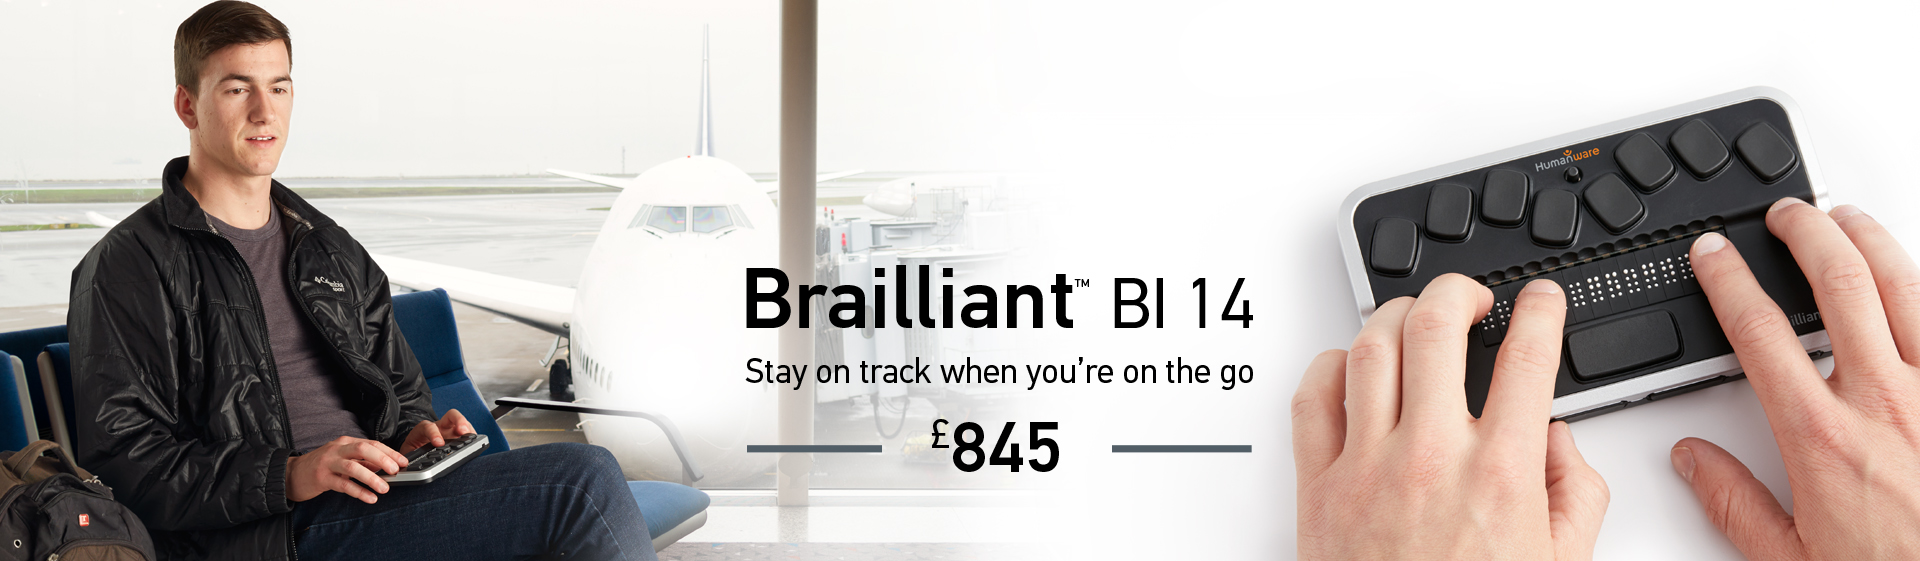 Brailliant BI 14 - Stay on track when you're on the go - £845